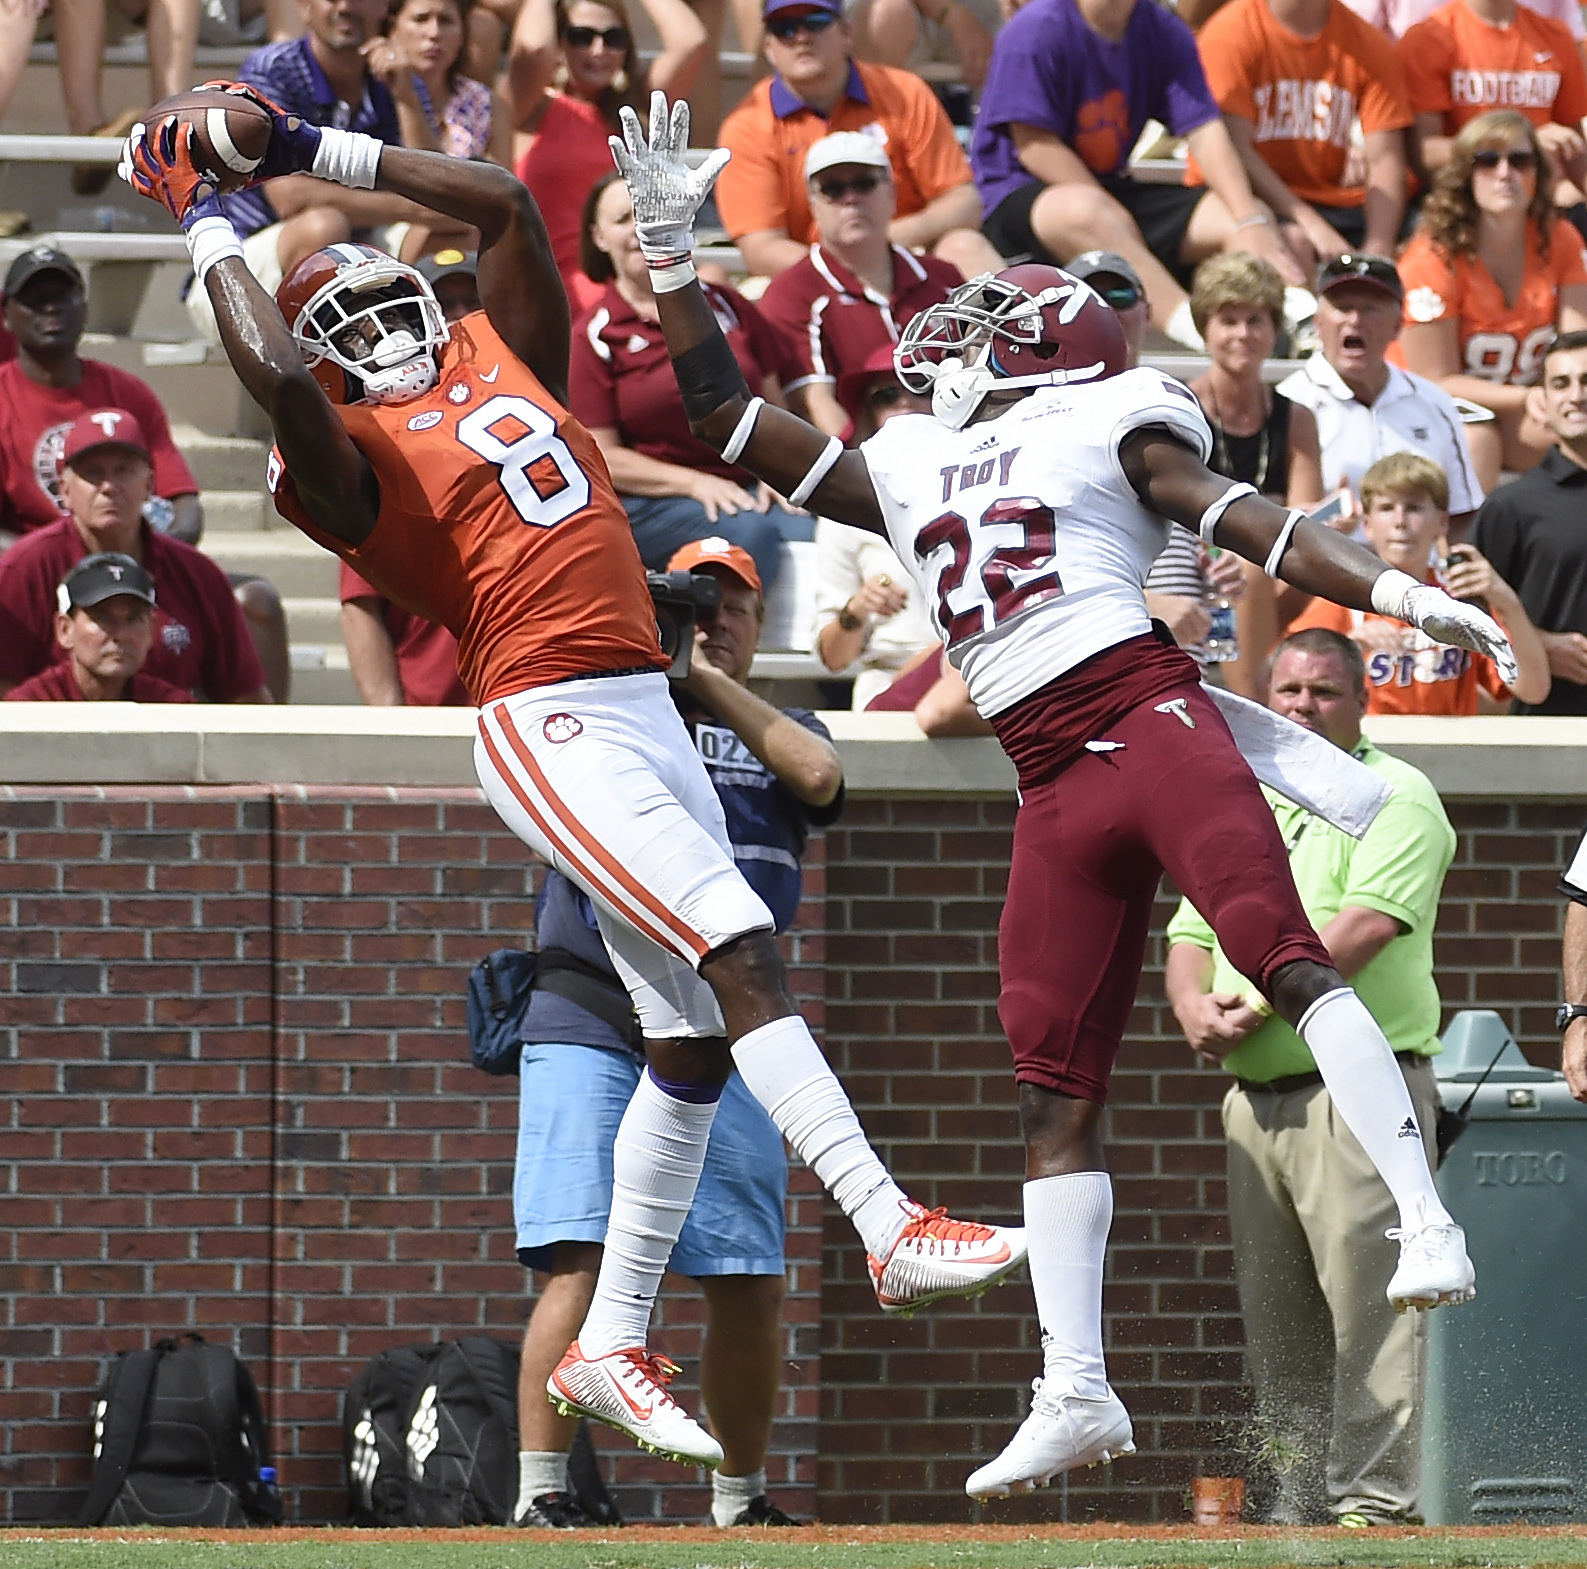 Clemson wide receiver Deon Cain (8) catches a touchdown pass in the end zone as Troy cornerback Jalen Rountree (22) defends during the second half an NCAA college football game on Saturday, Sept. 10, 2016, in Clemson, S.C. Clemson won 30-24. (AP Photo/Rai